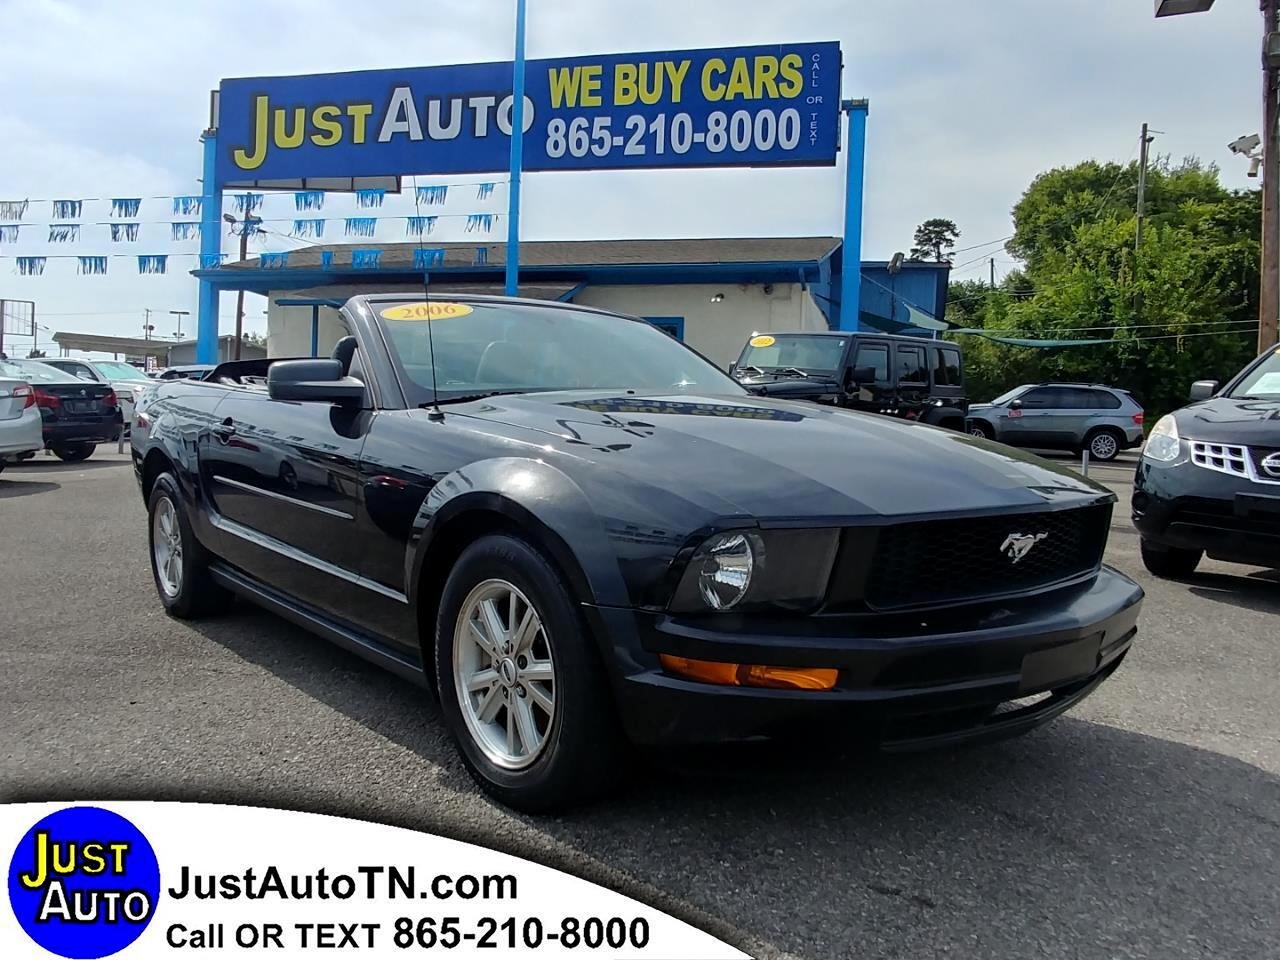 2006 Ford Mustang 2dr Conv Standard